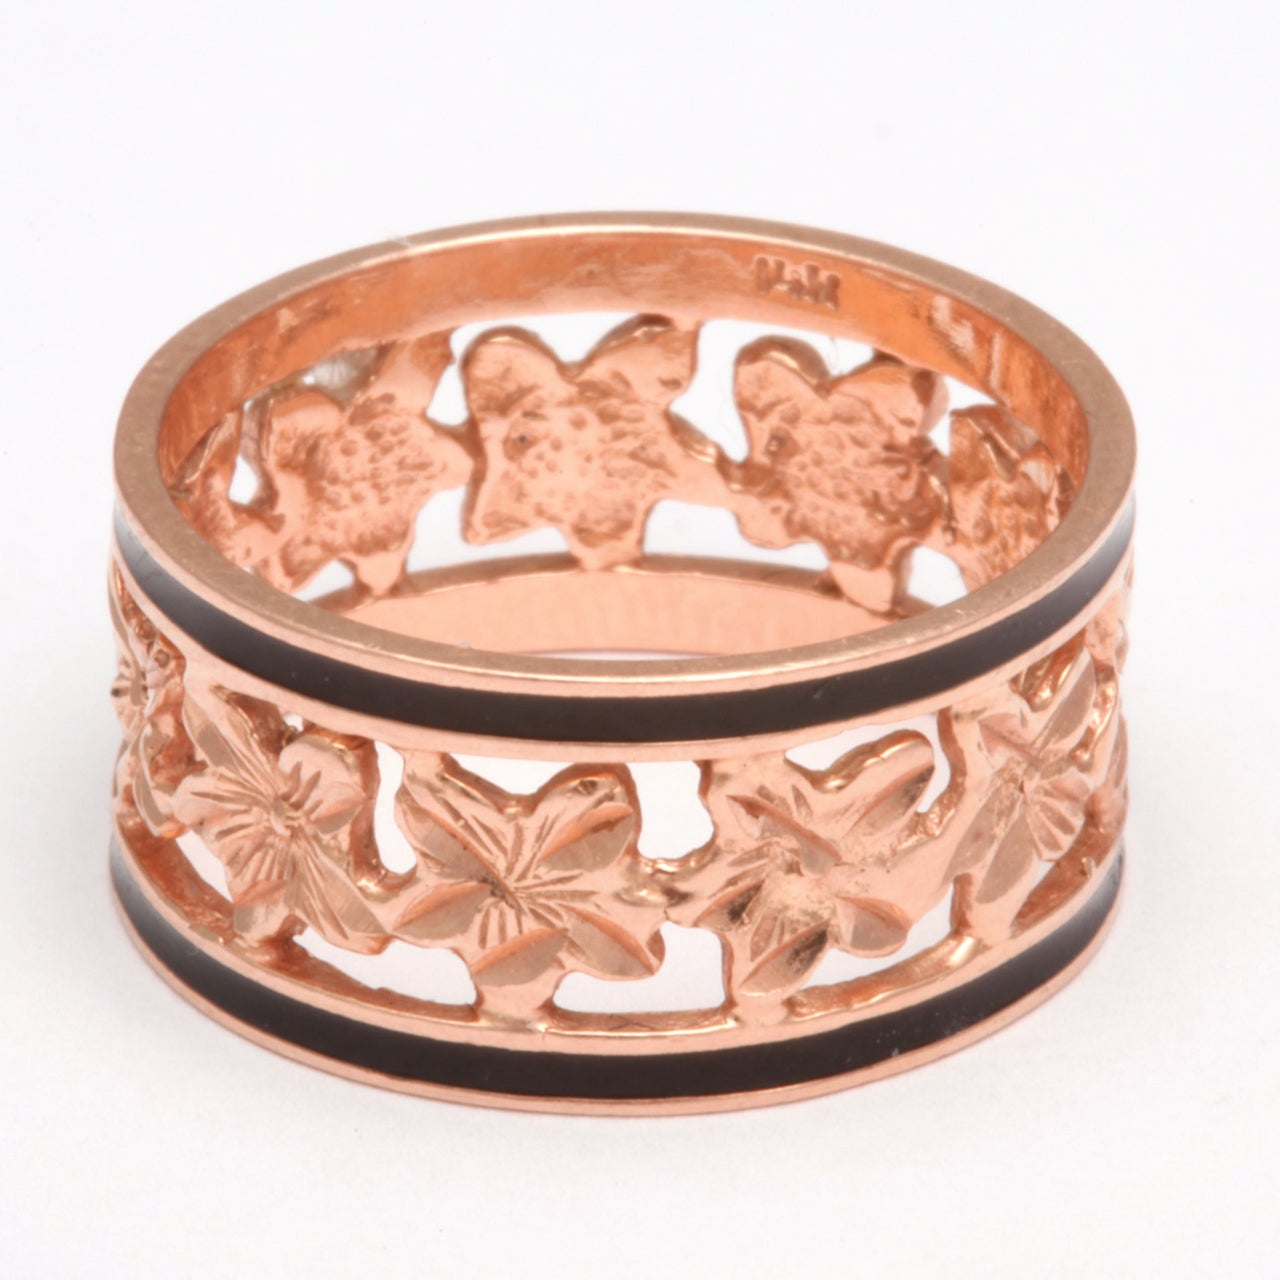 14 Karat Gold Wedding Band with Ivy Leaves and Enamel, circa 1870 In Excellent Condition For Sale In Stamford, CT